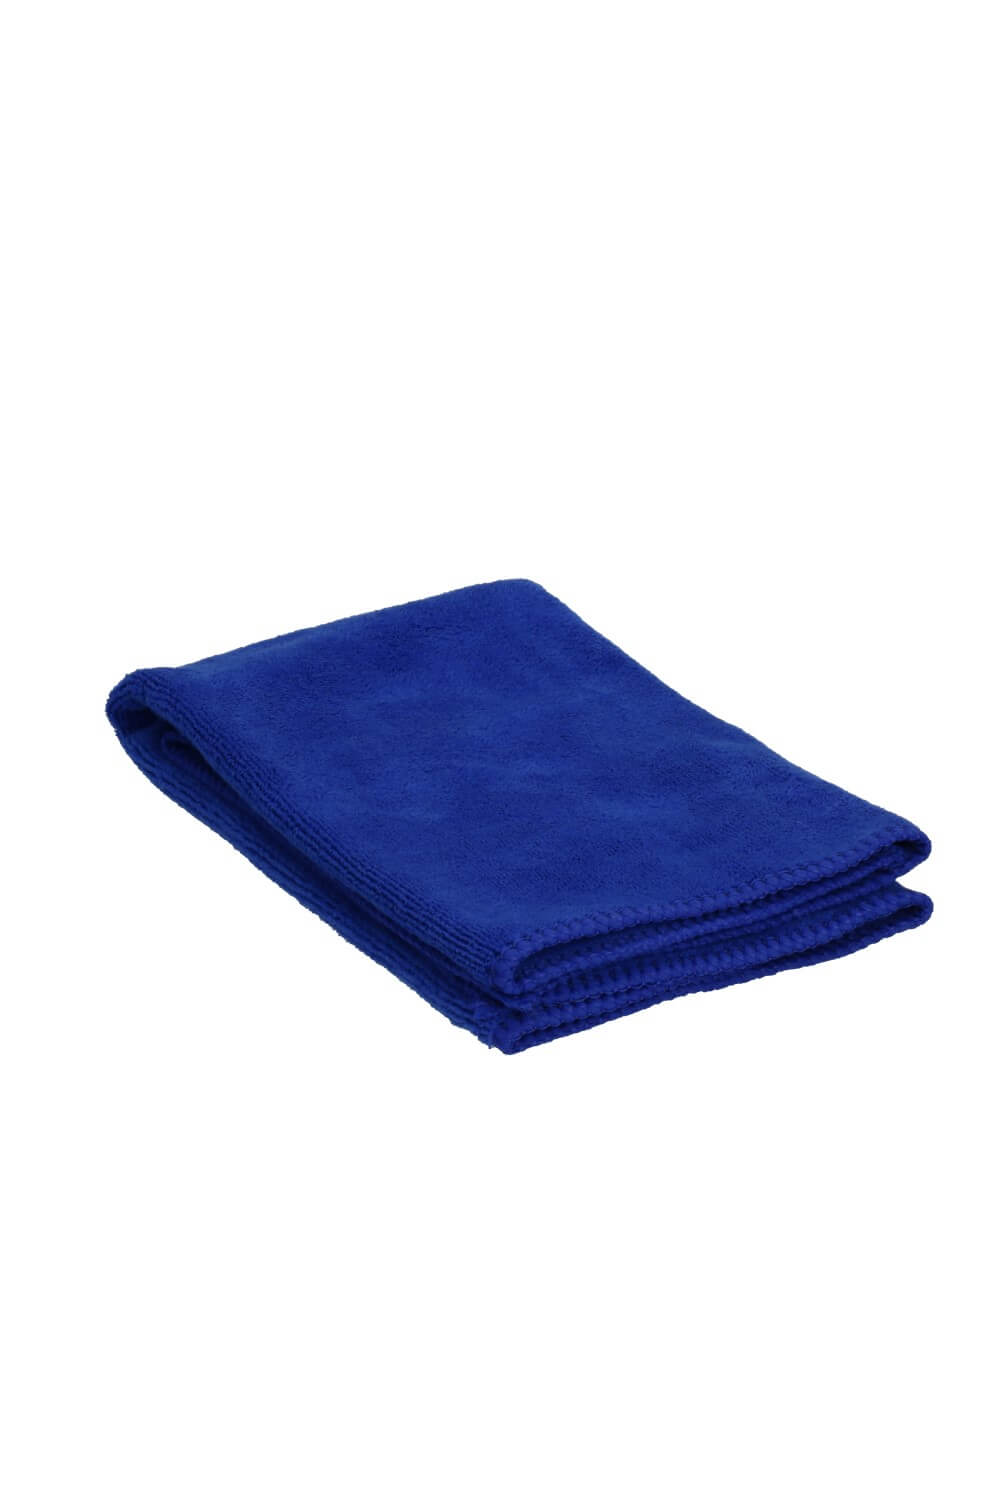 Blue very soft microfiber cloth for polishing